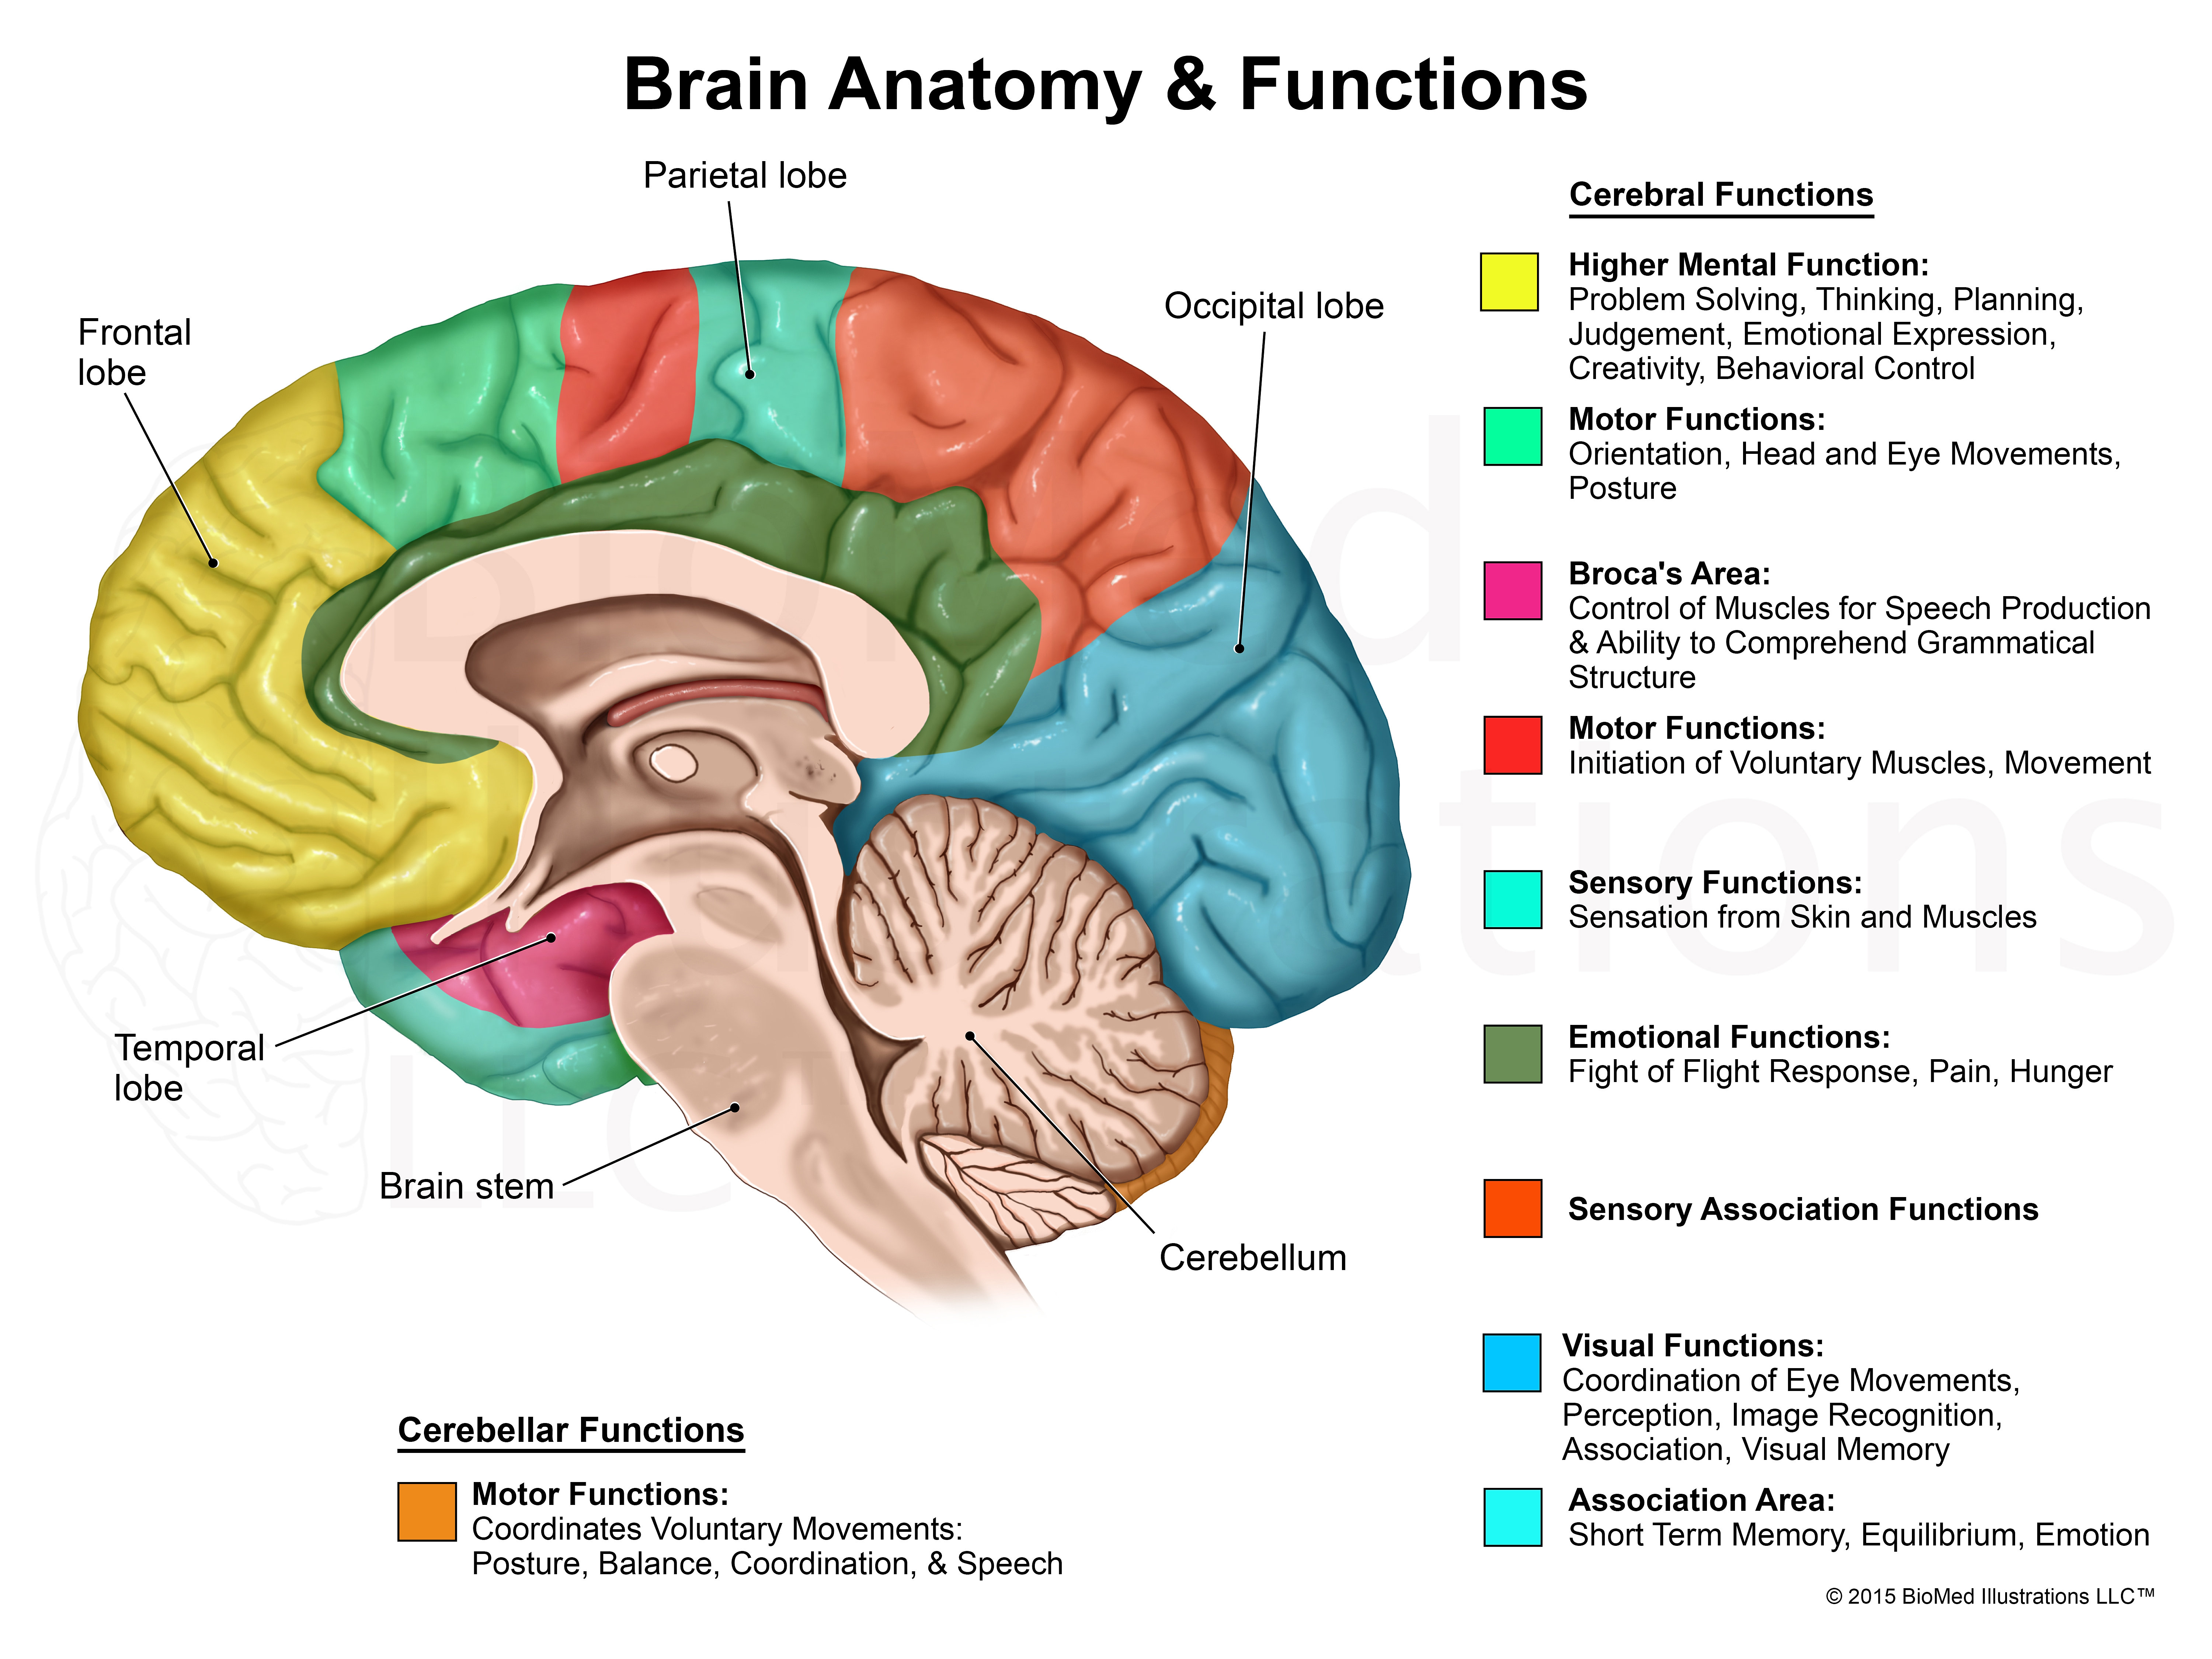 Anatomy of the brain and its function